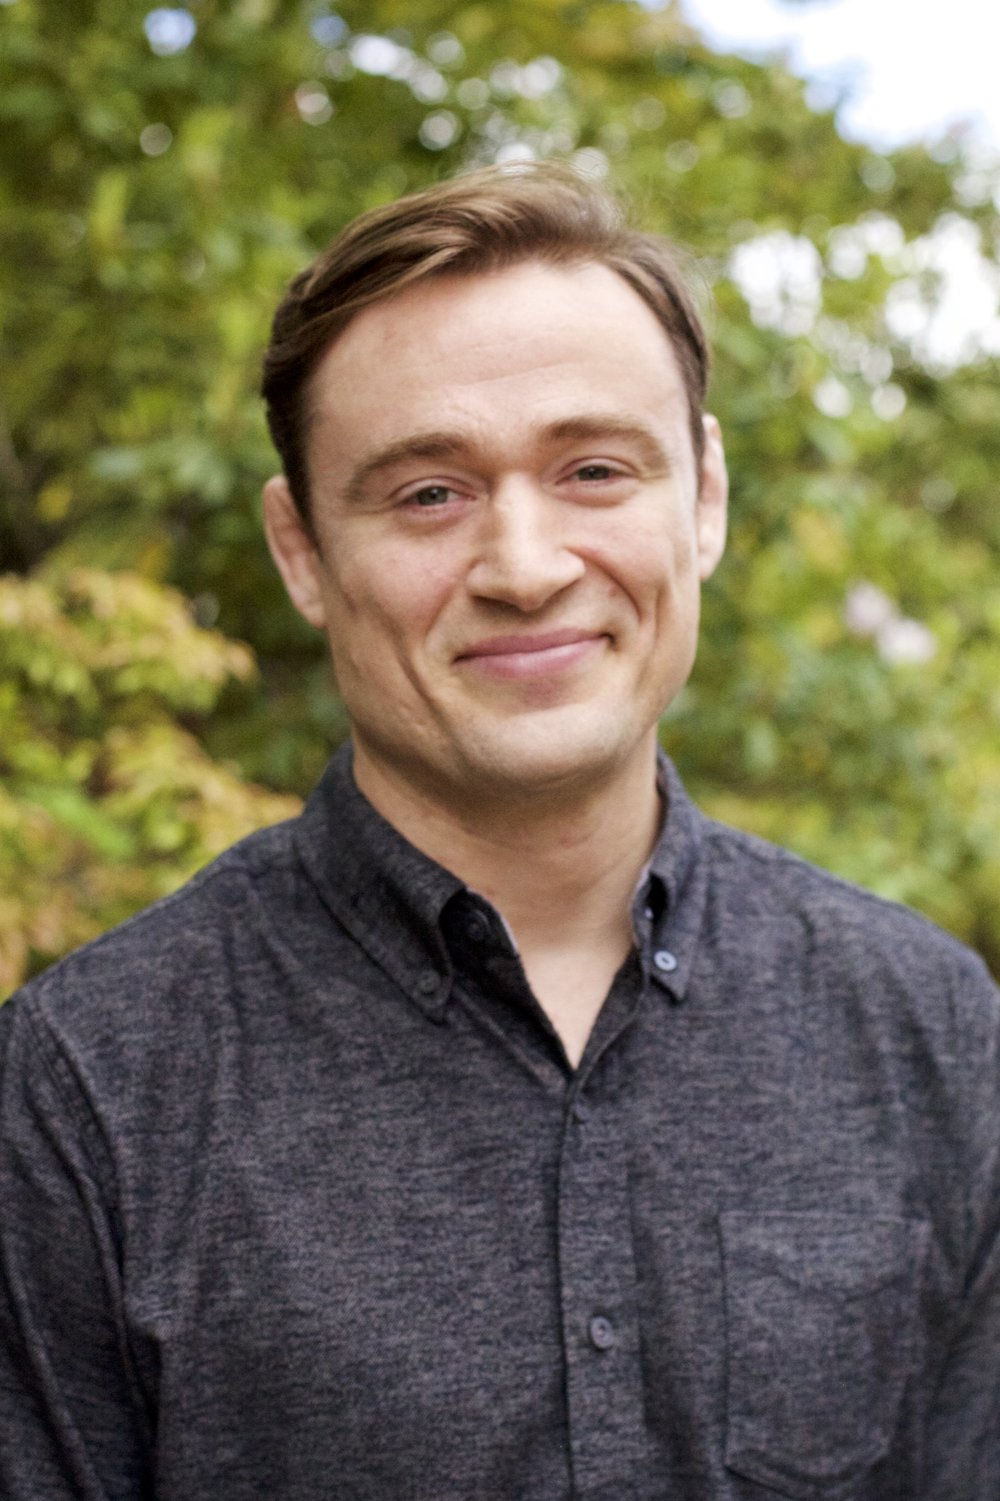 sean ryan, MA, LMHC, therapist    ∙ Adolescents & Adults (Ages 15 & up) ∙ Relationship Issues   ∙  Gottman Marriage Counseling  ∙ Infidelity & Affair Recovery   ∙ Anxiety   ∙  Depression  ∙  Grief & Loss  ∙  Addiction & Recovery  ∙ Substance Abuse   ∙  Life Transitions  ∙  Mindfulness-Based Cognitive Therapy  ∙  Self-Authoring/ Narrative Therapy  ∙Existential/ Humanistic Approach